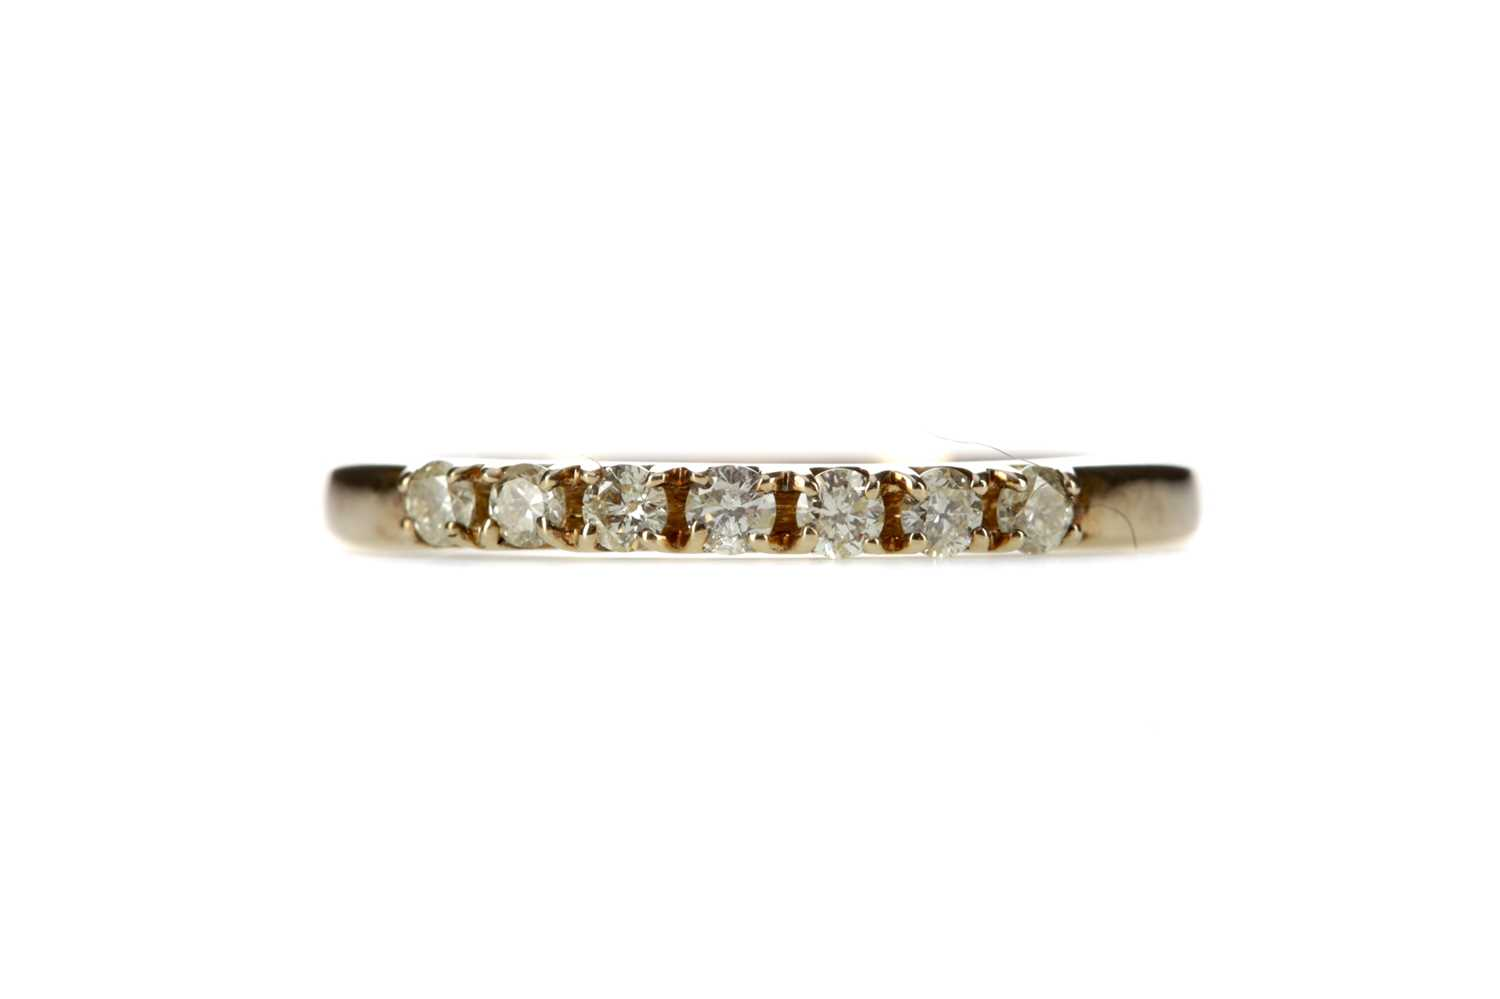 Lot 325 - A DIAMOND SEVEN STONE RING